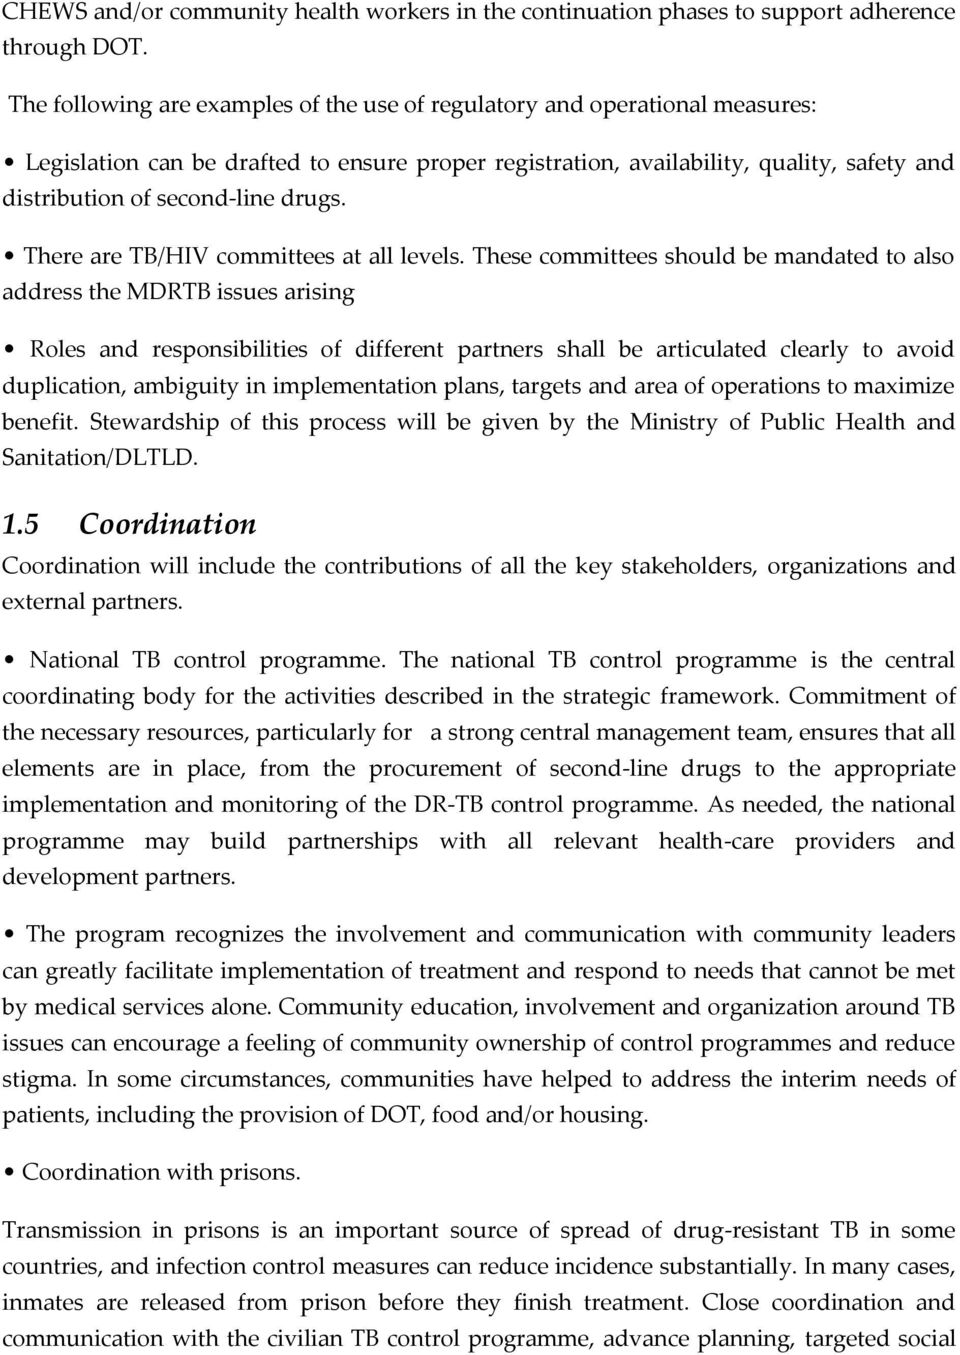 drugs. There are TB/HIV committees at all levels.